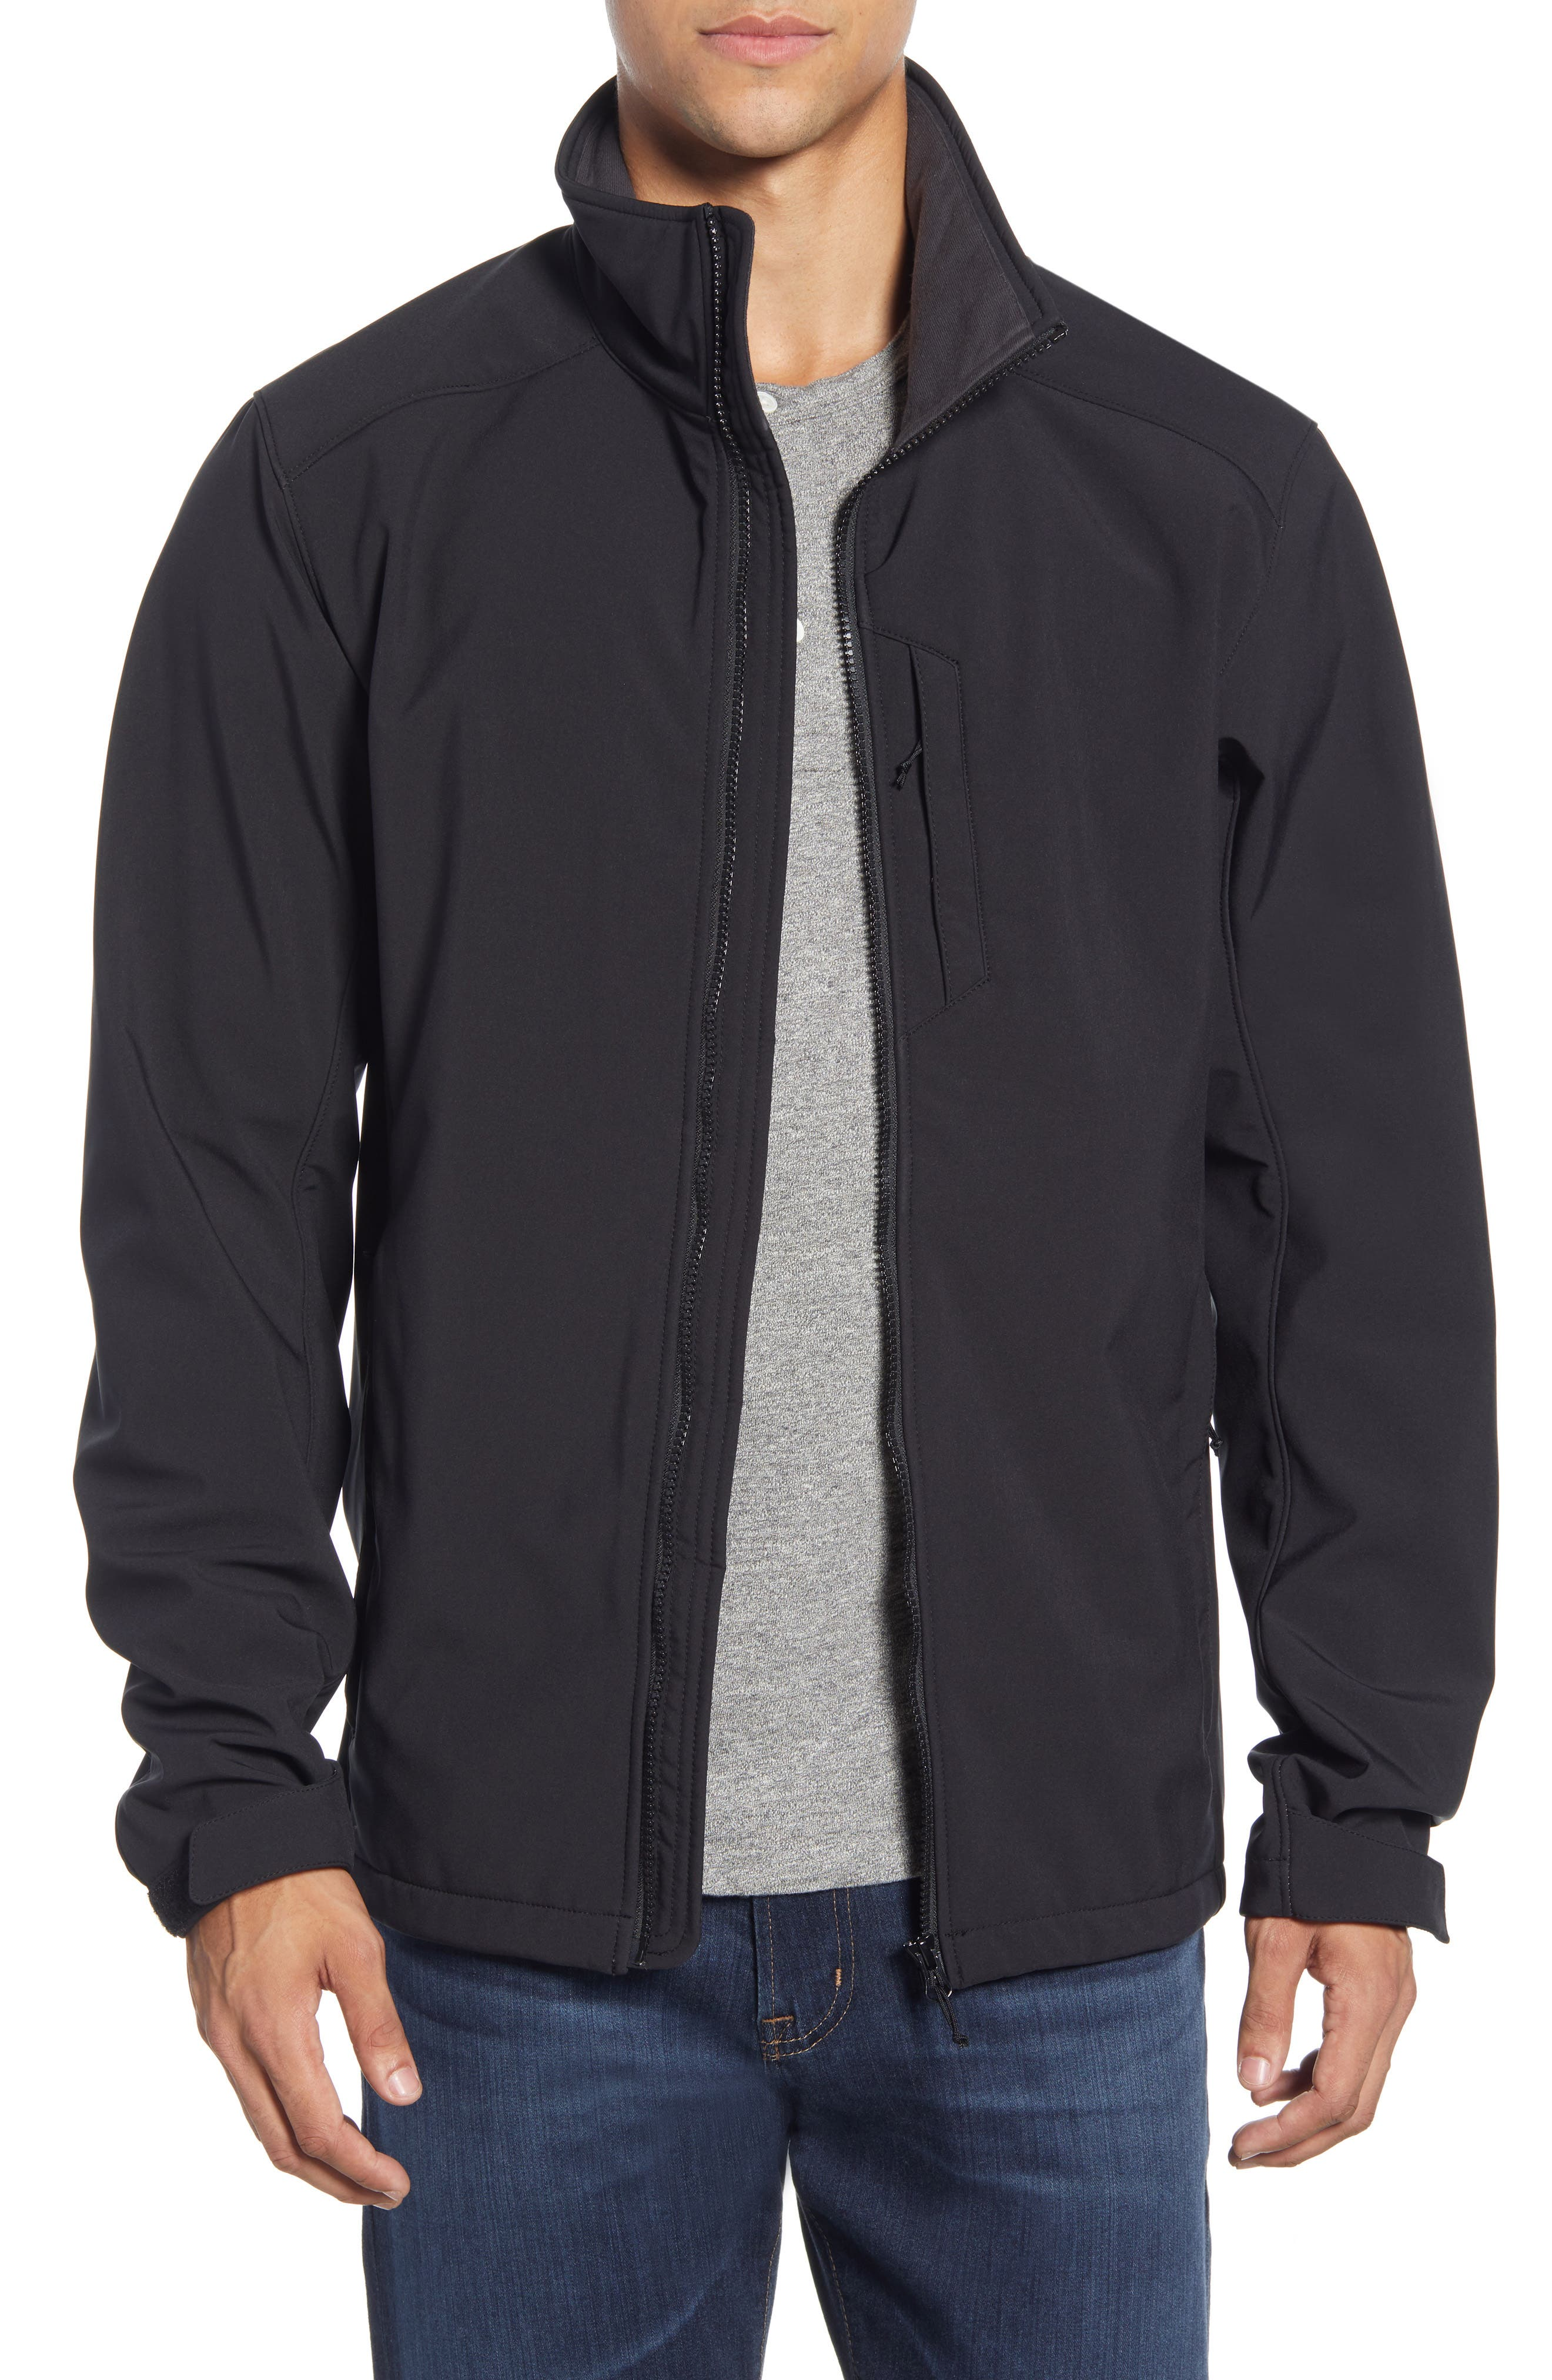 Paramount Water Resistant Softshell Jacket